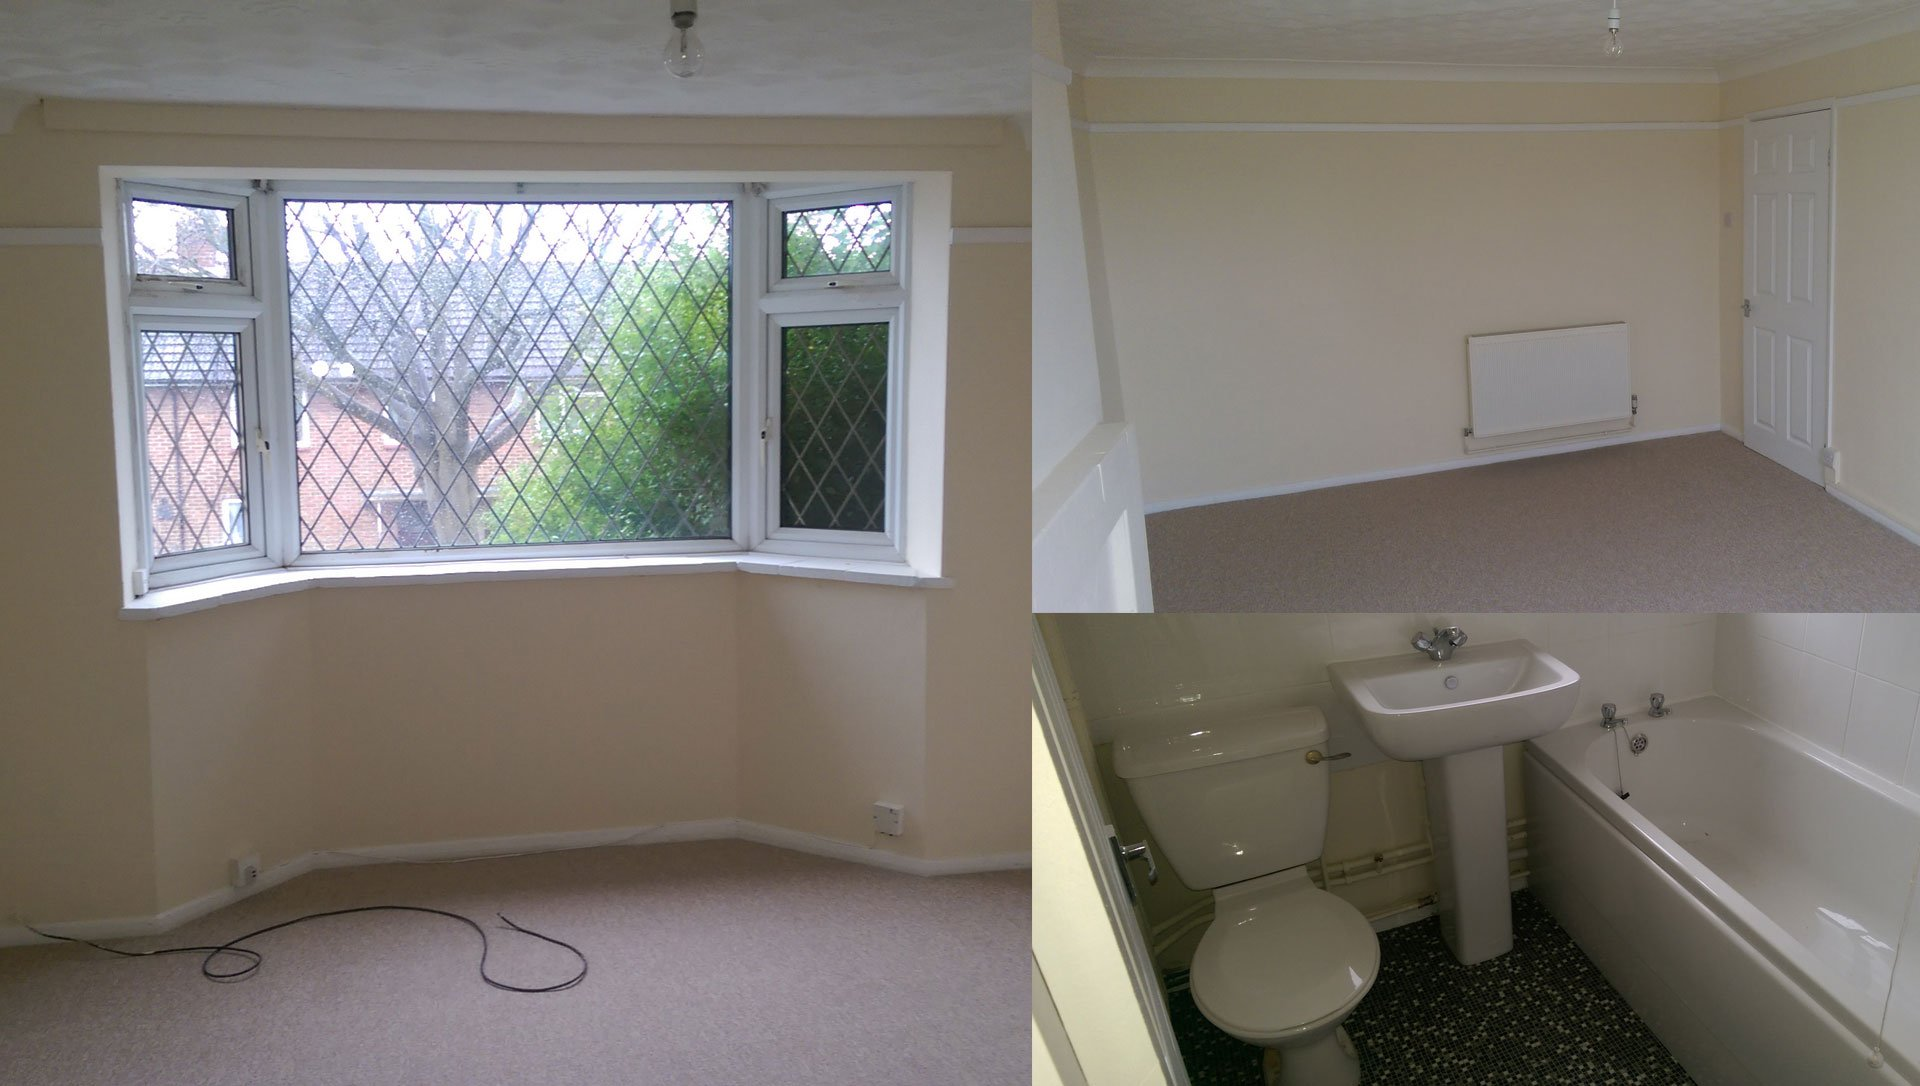 A range of building services